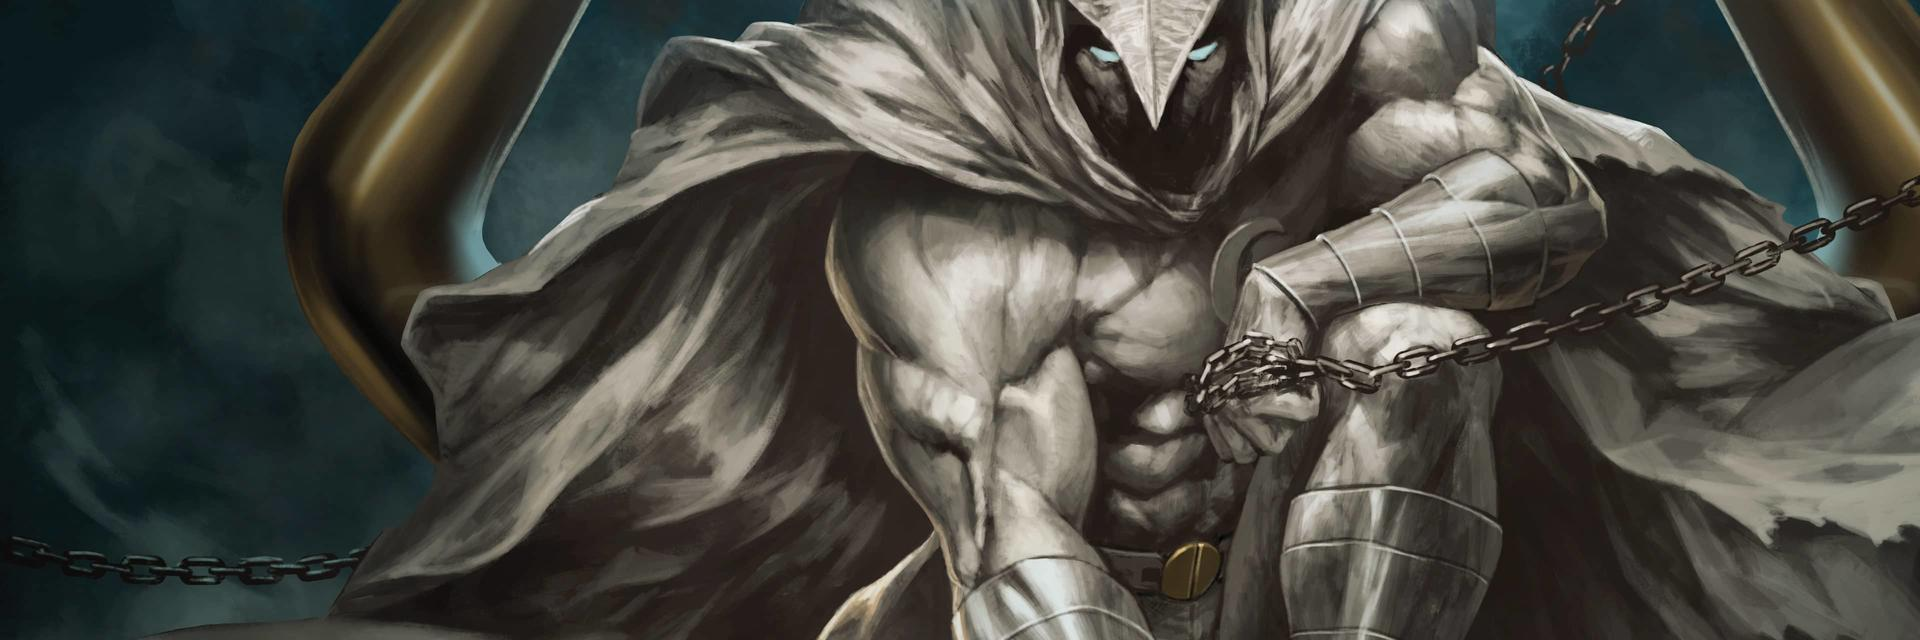 Moon Knight (Marc Spector) | Characters | Marvel